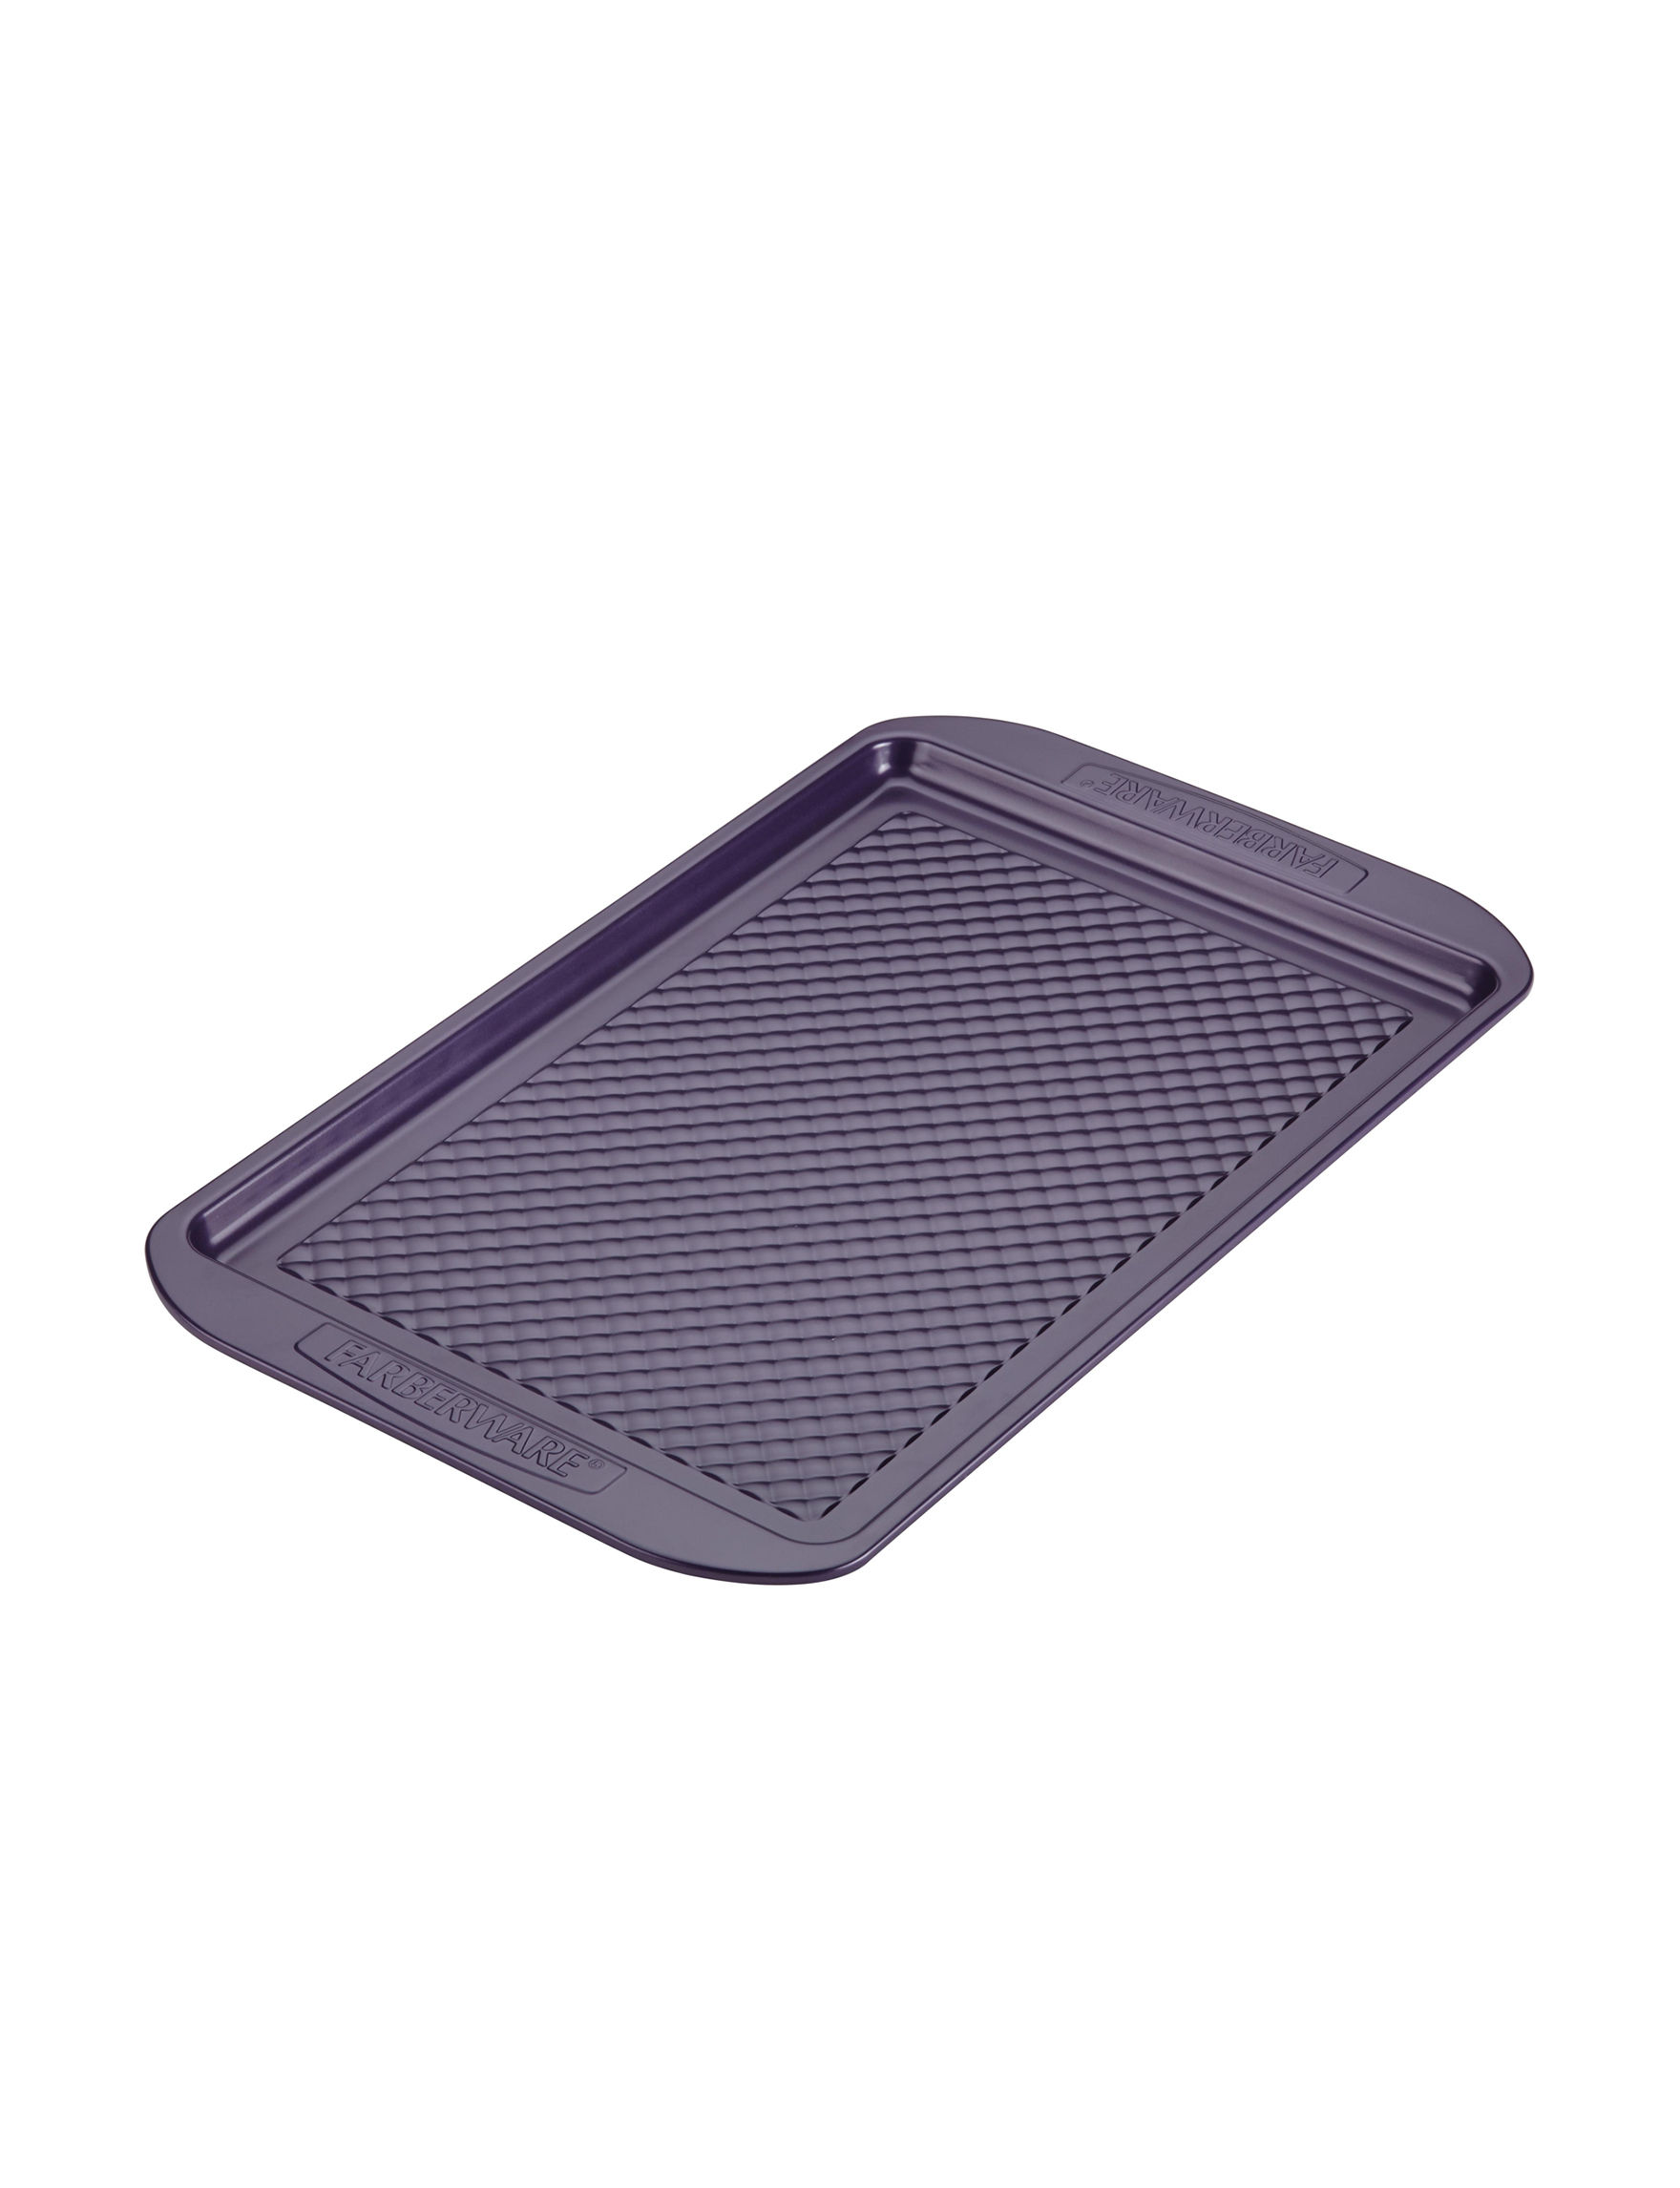 Farberware Purple Cookie Sheets Bakeware Kitchen Appliances